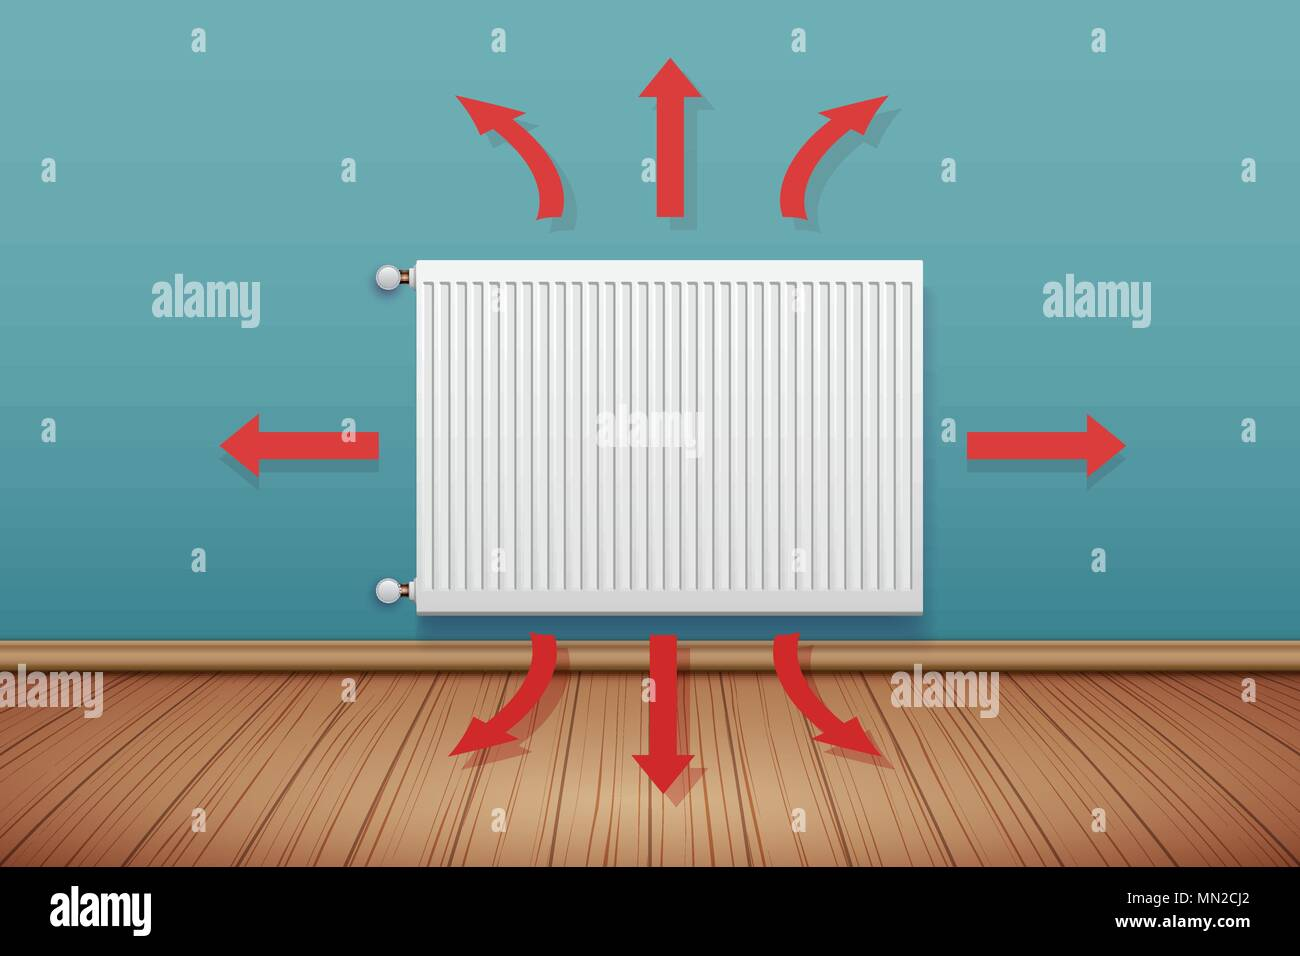 Central Heating Stock Vector Images - Alamy